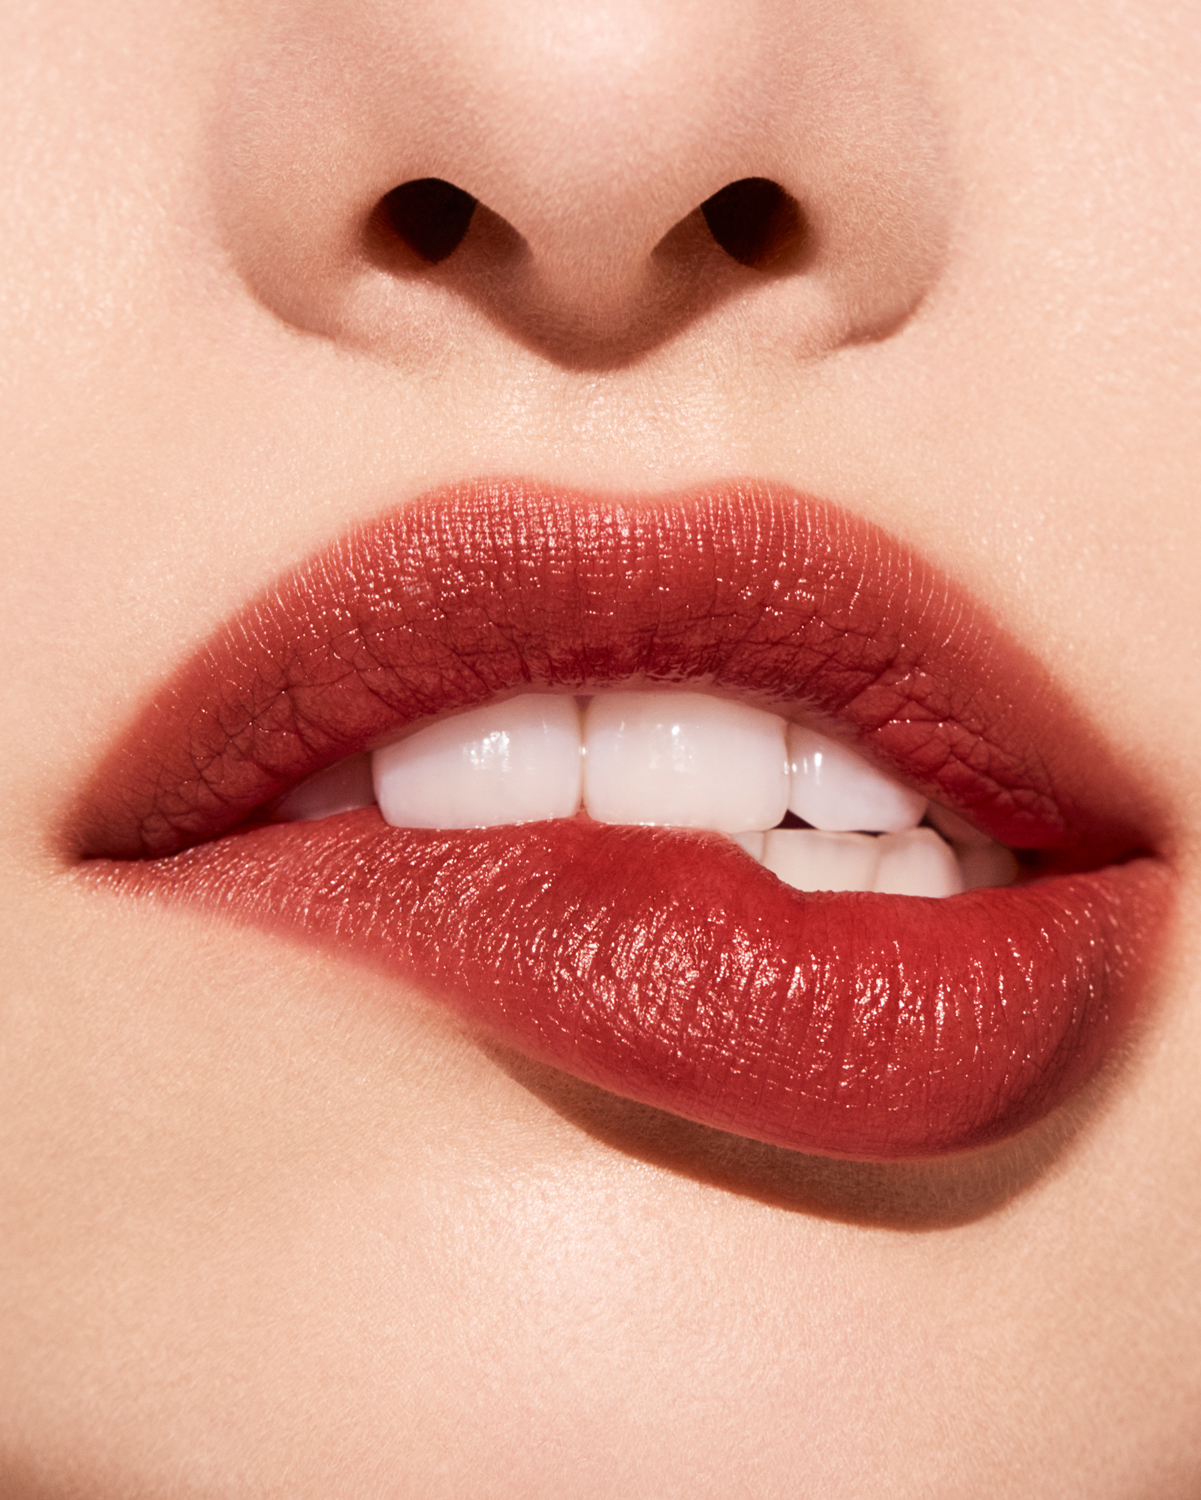 COMITA_180126_BOBBI-BROWN_Lips-Social-06-Stills-028_B.jpg